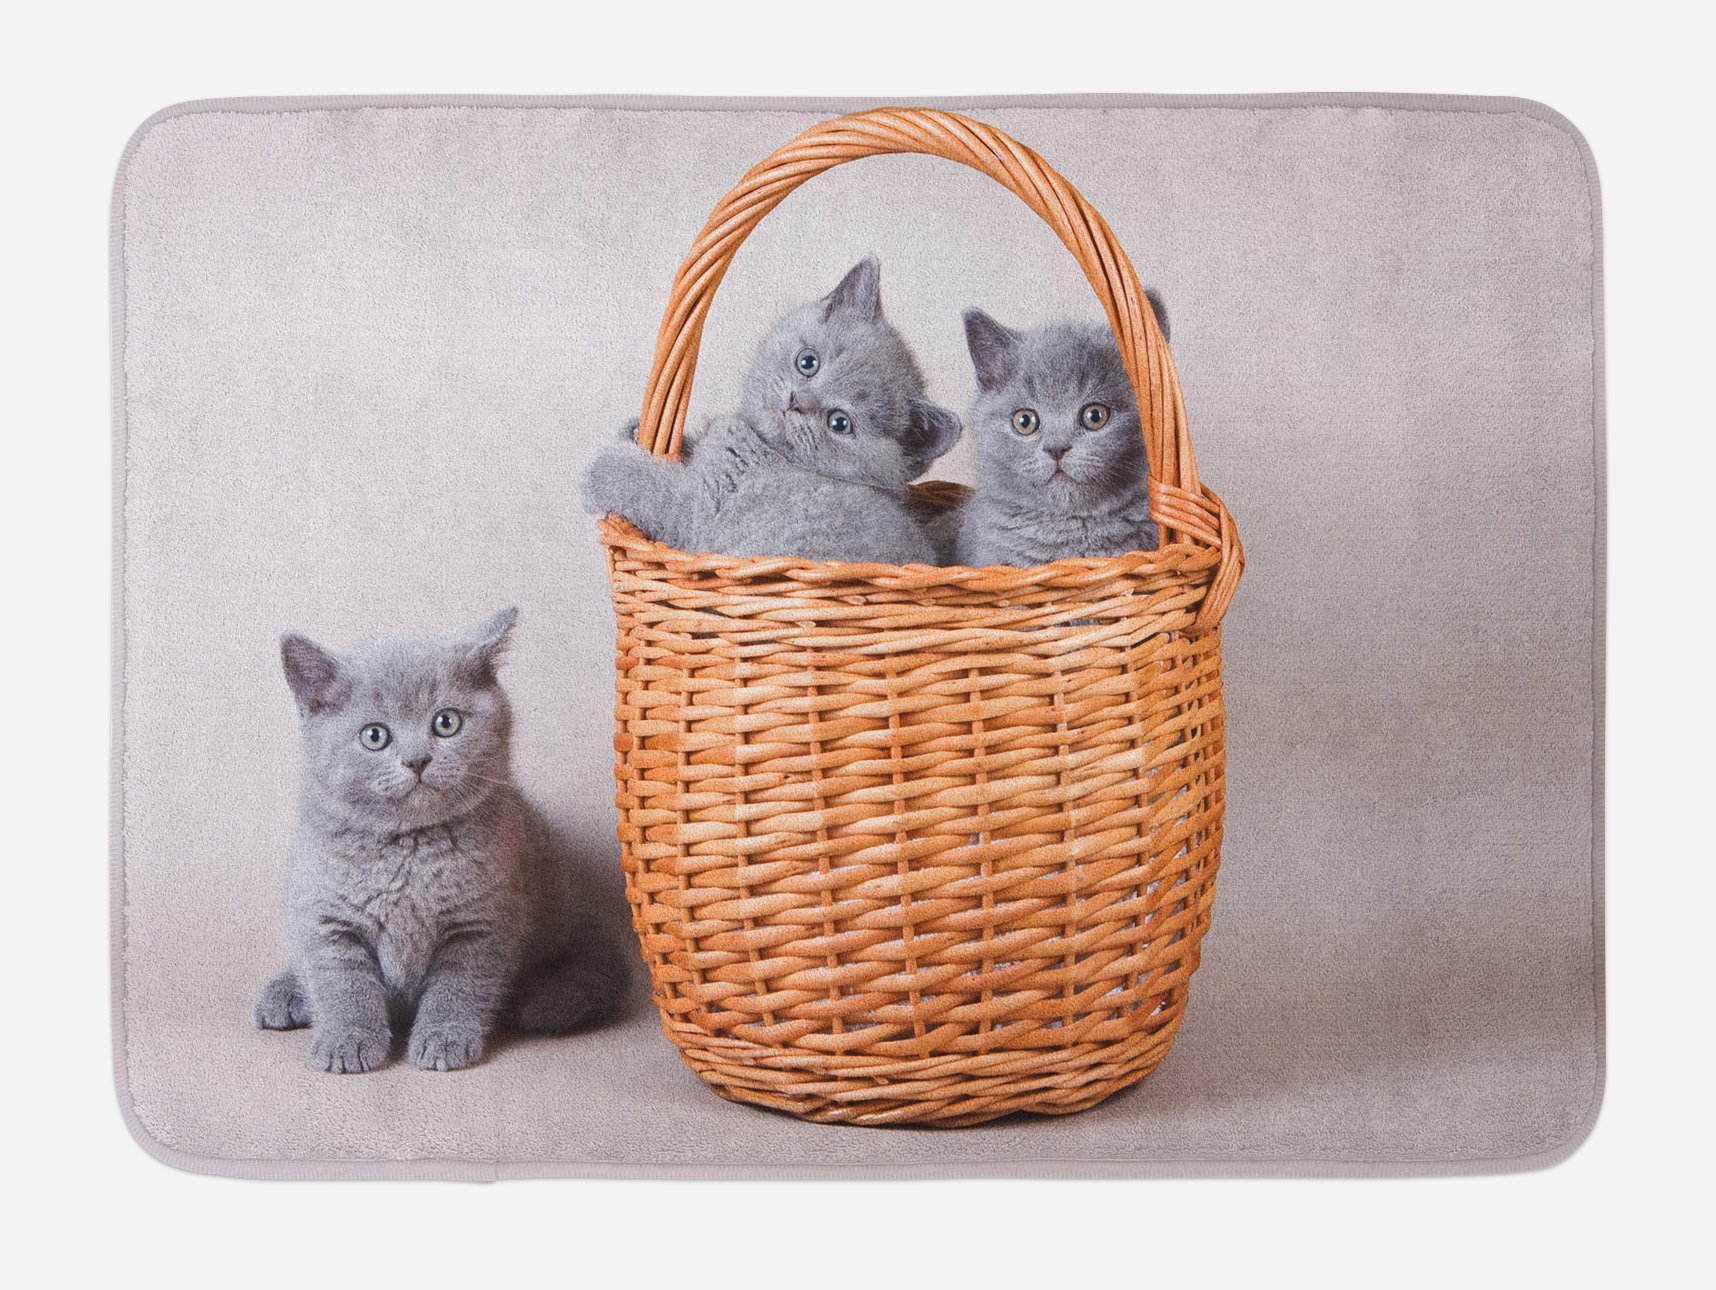 Ambesonne Kitten Bath Mat, Three British Cats Kitties in Basket Adorable Baby Animals Fluffy Pets, Plush Bathroom Decor Mat with Non Slip Backing, 29.5 W X 17.5 W Inches, Grey Pale Brown Dust